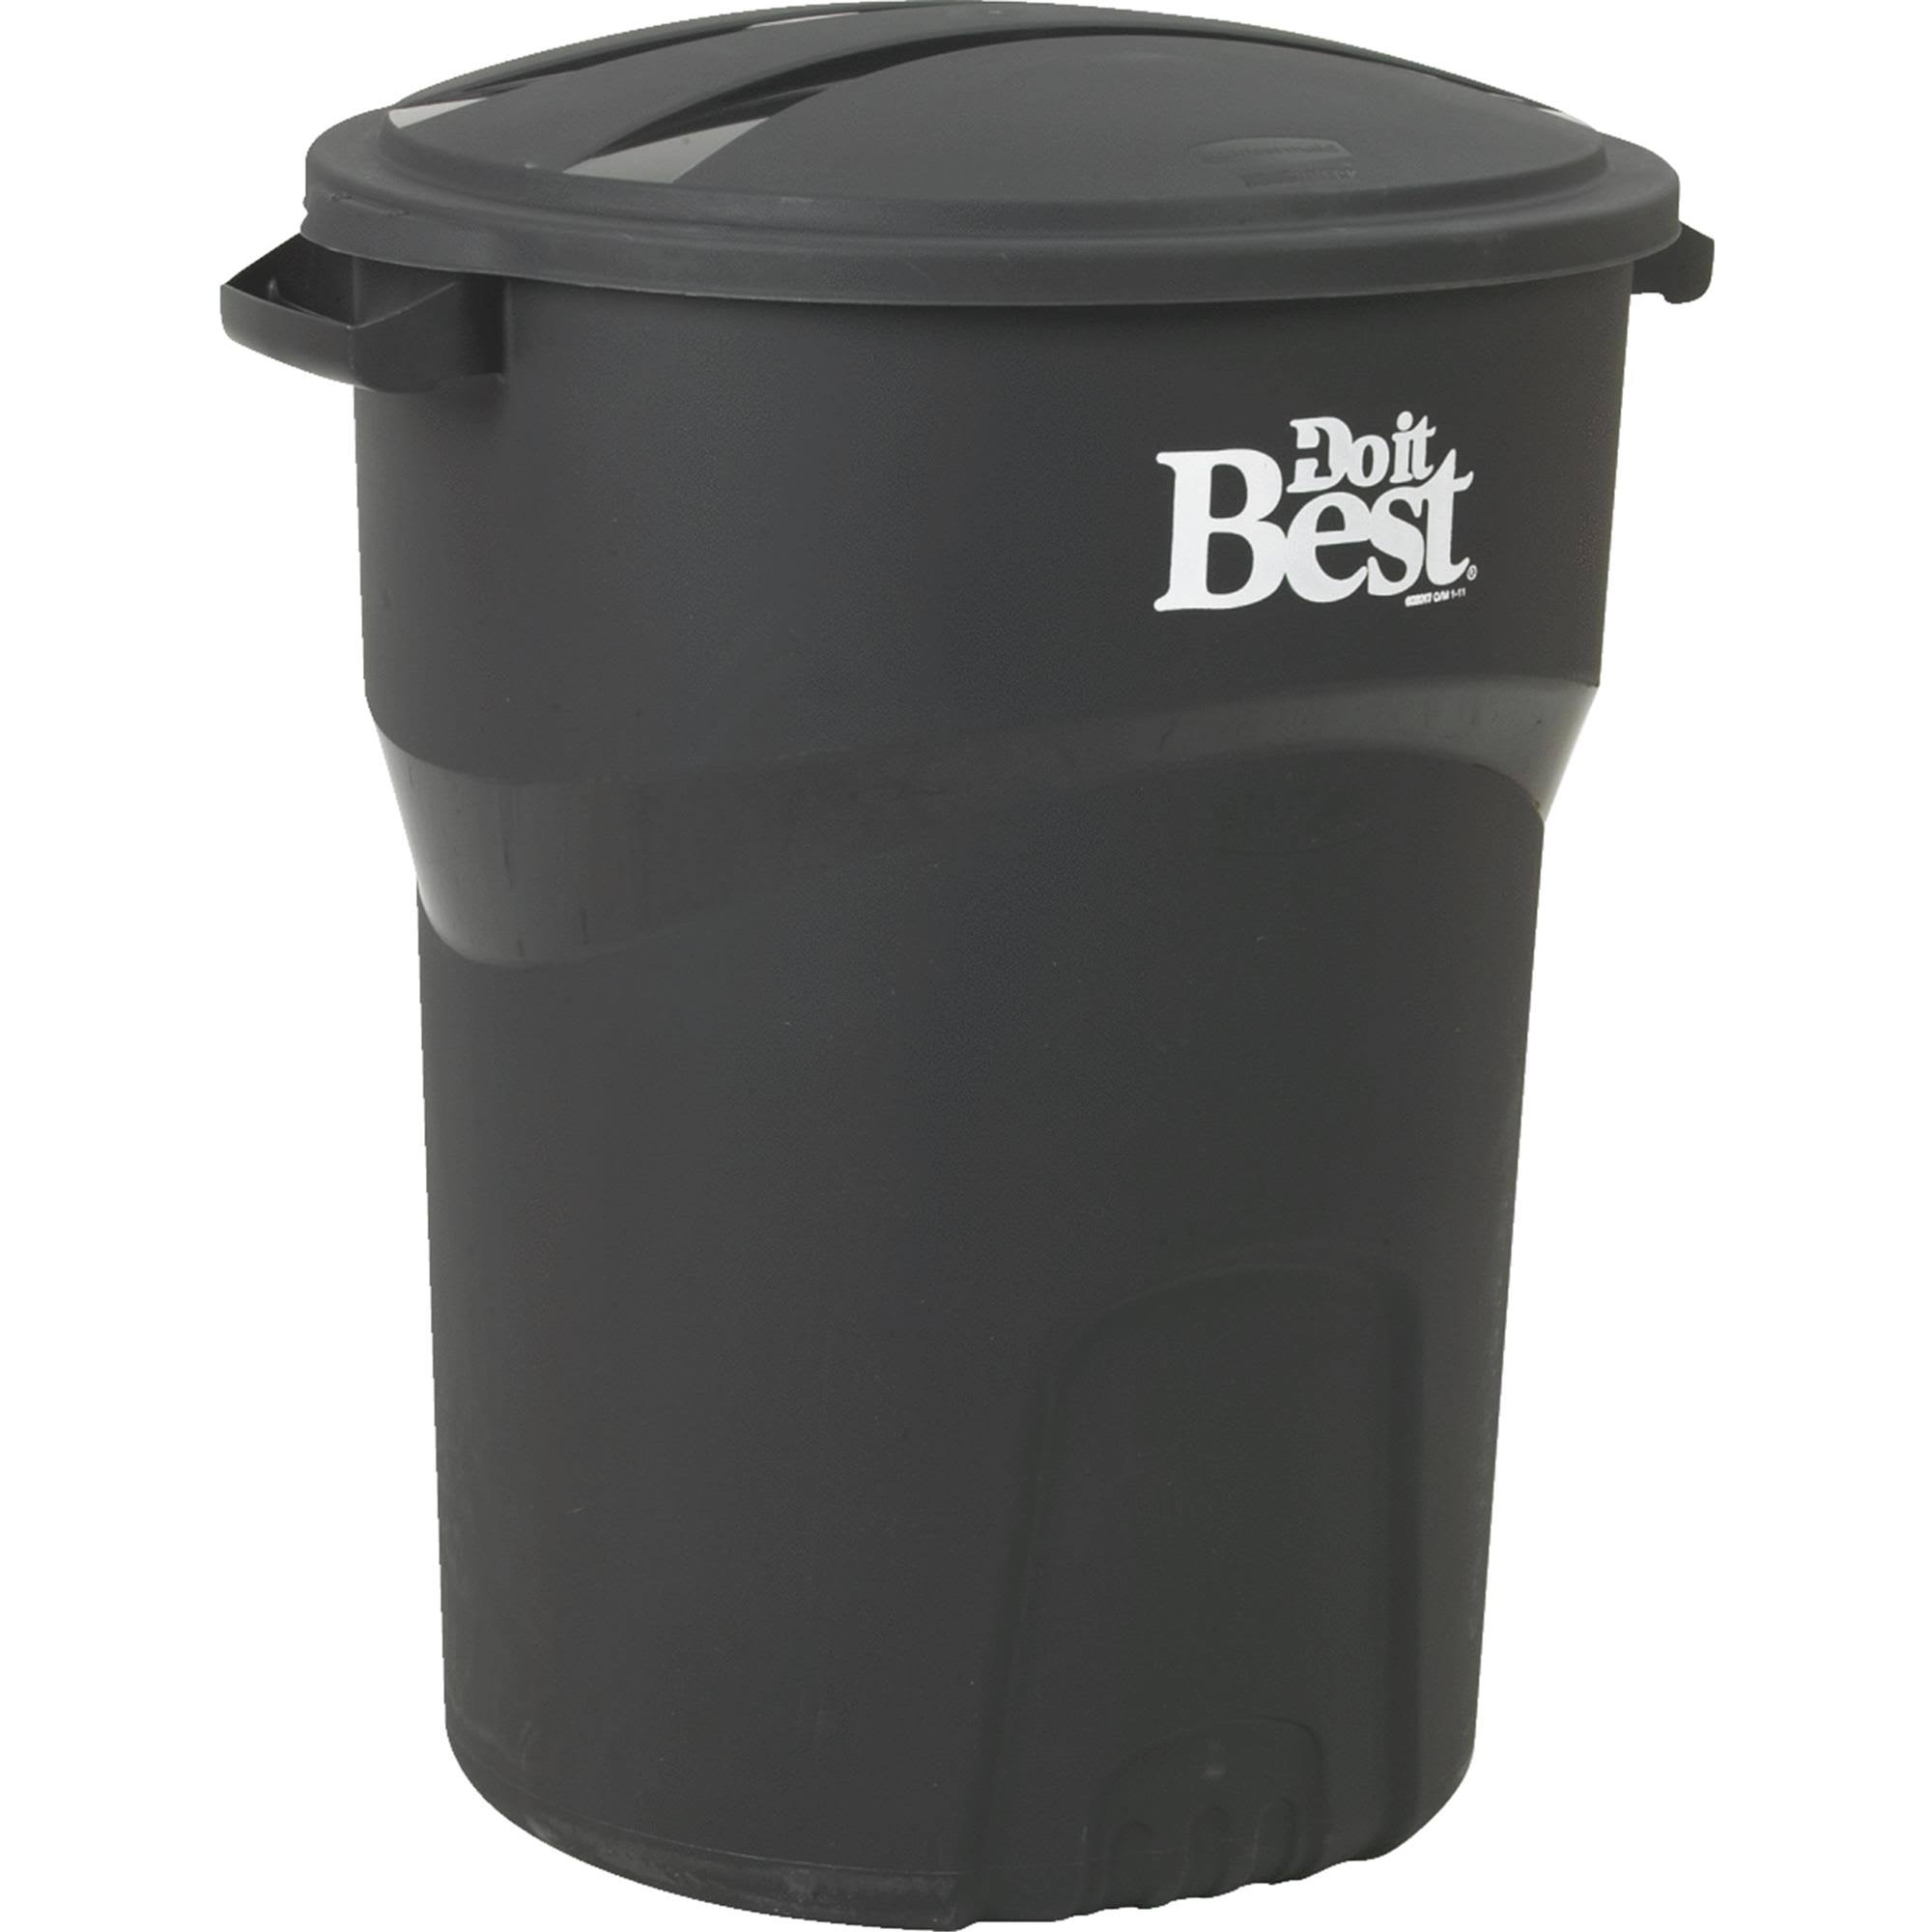 Rubbermaid Trash Can - Black, 32gal